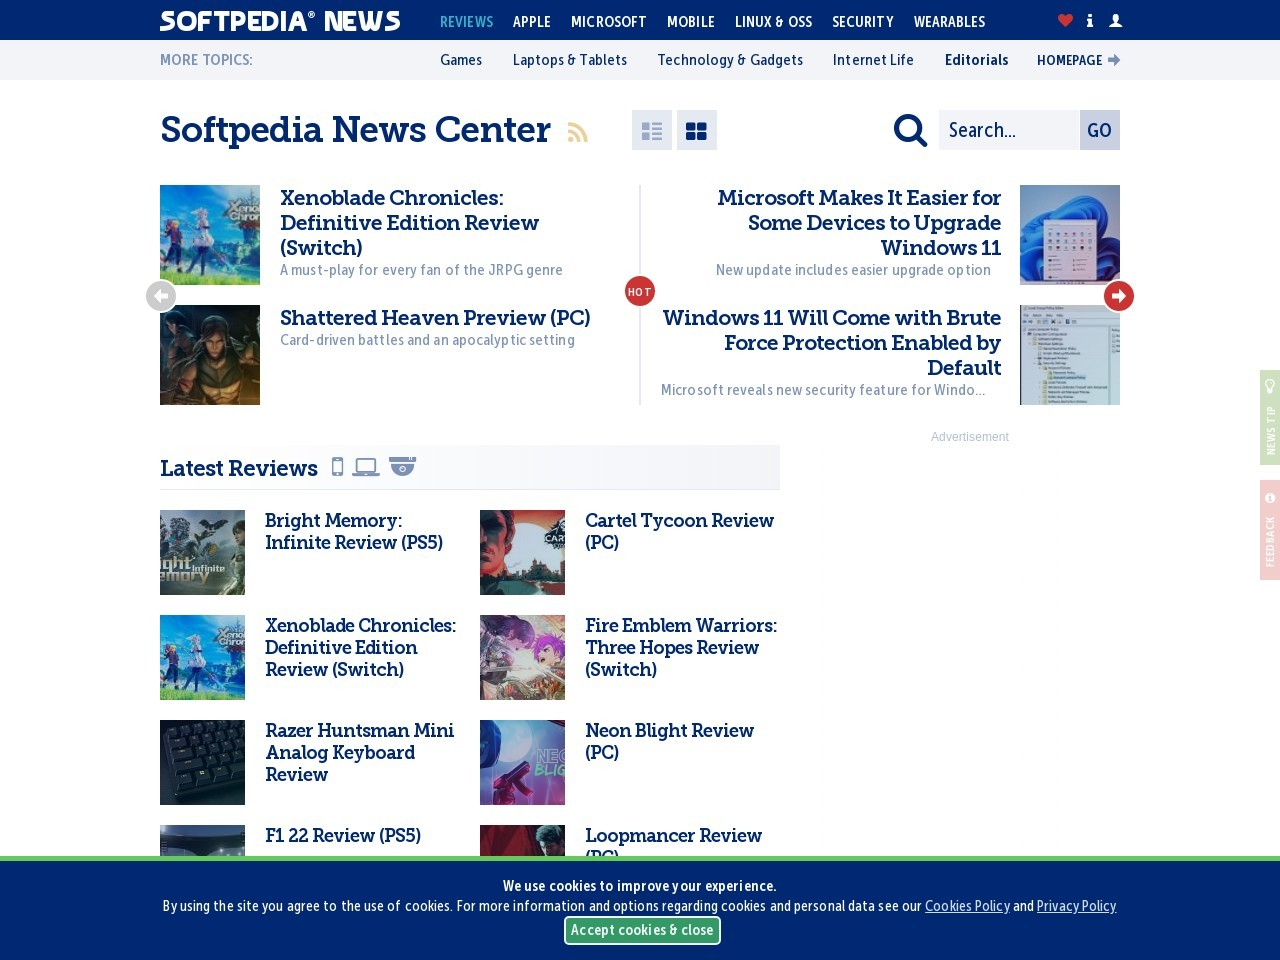 http://news.softpedia.com/news/microsoft-launches-windows-scoop-fans-program-for-the-biggest-fans-of-windows-511401.shtml